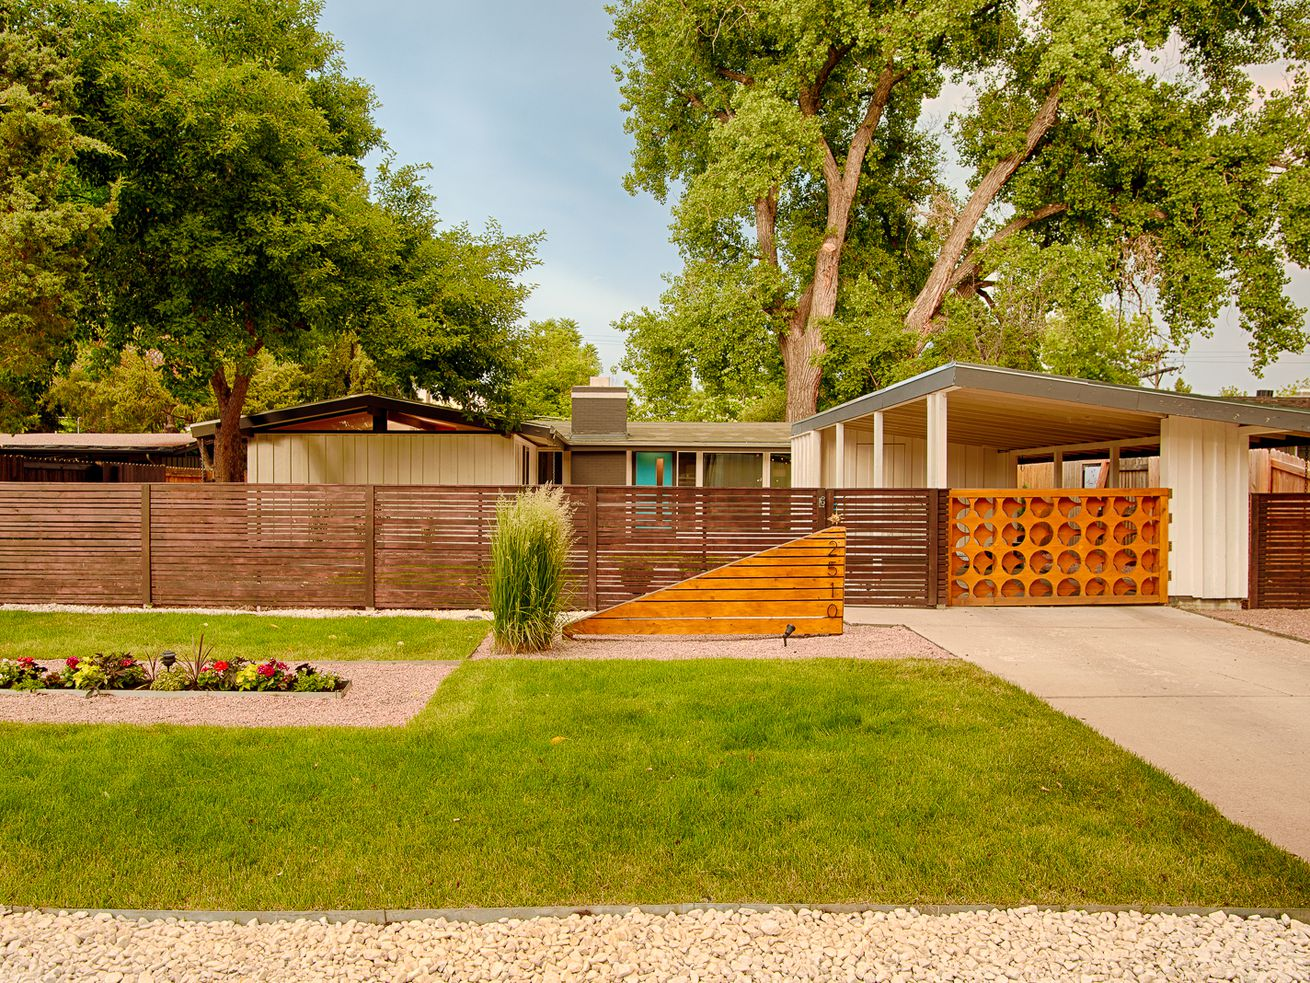 Renovating a midcentury modern home: 9 tips from an expert